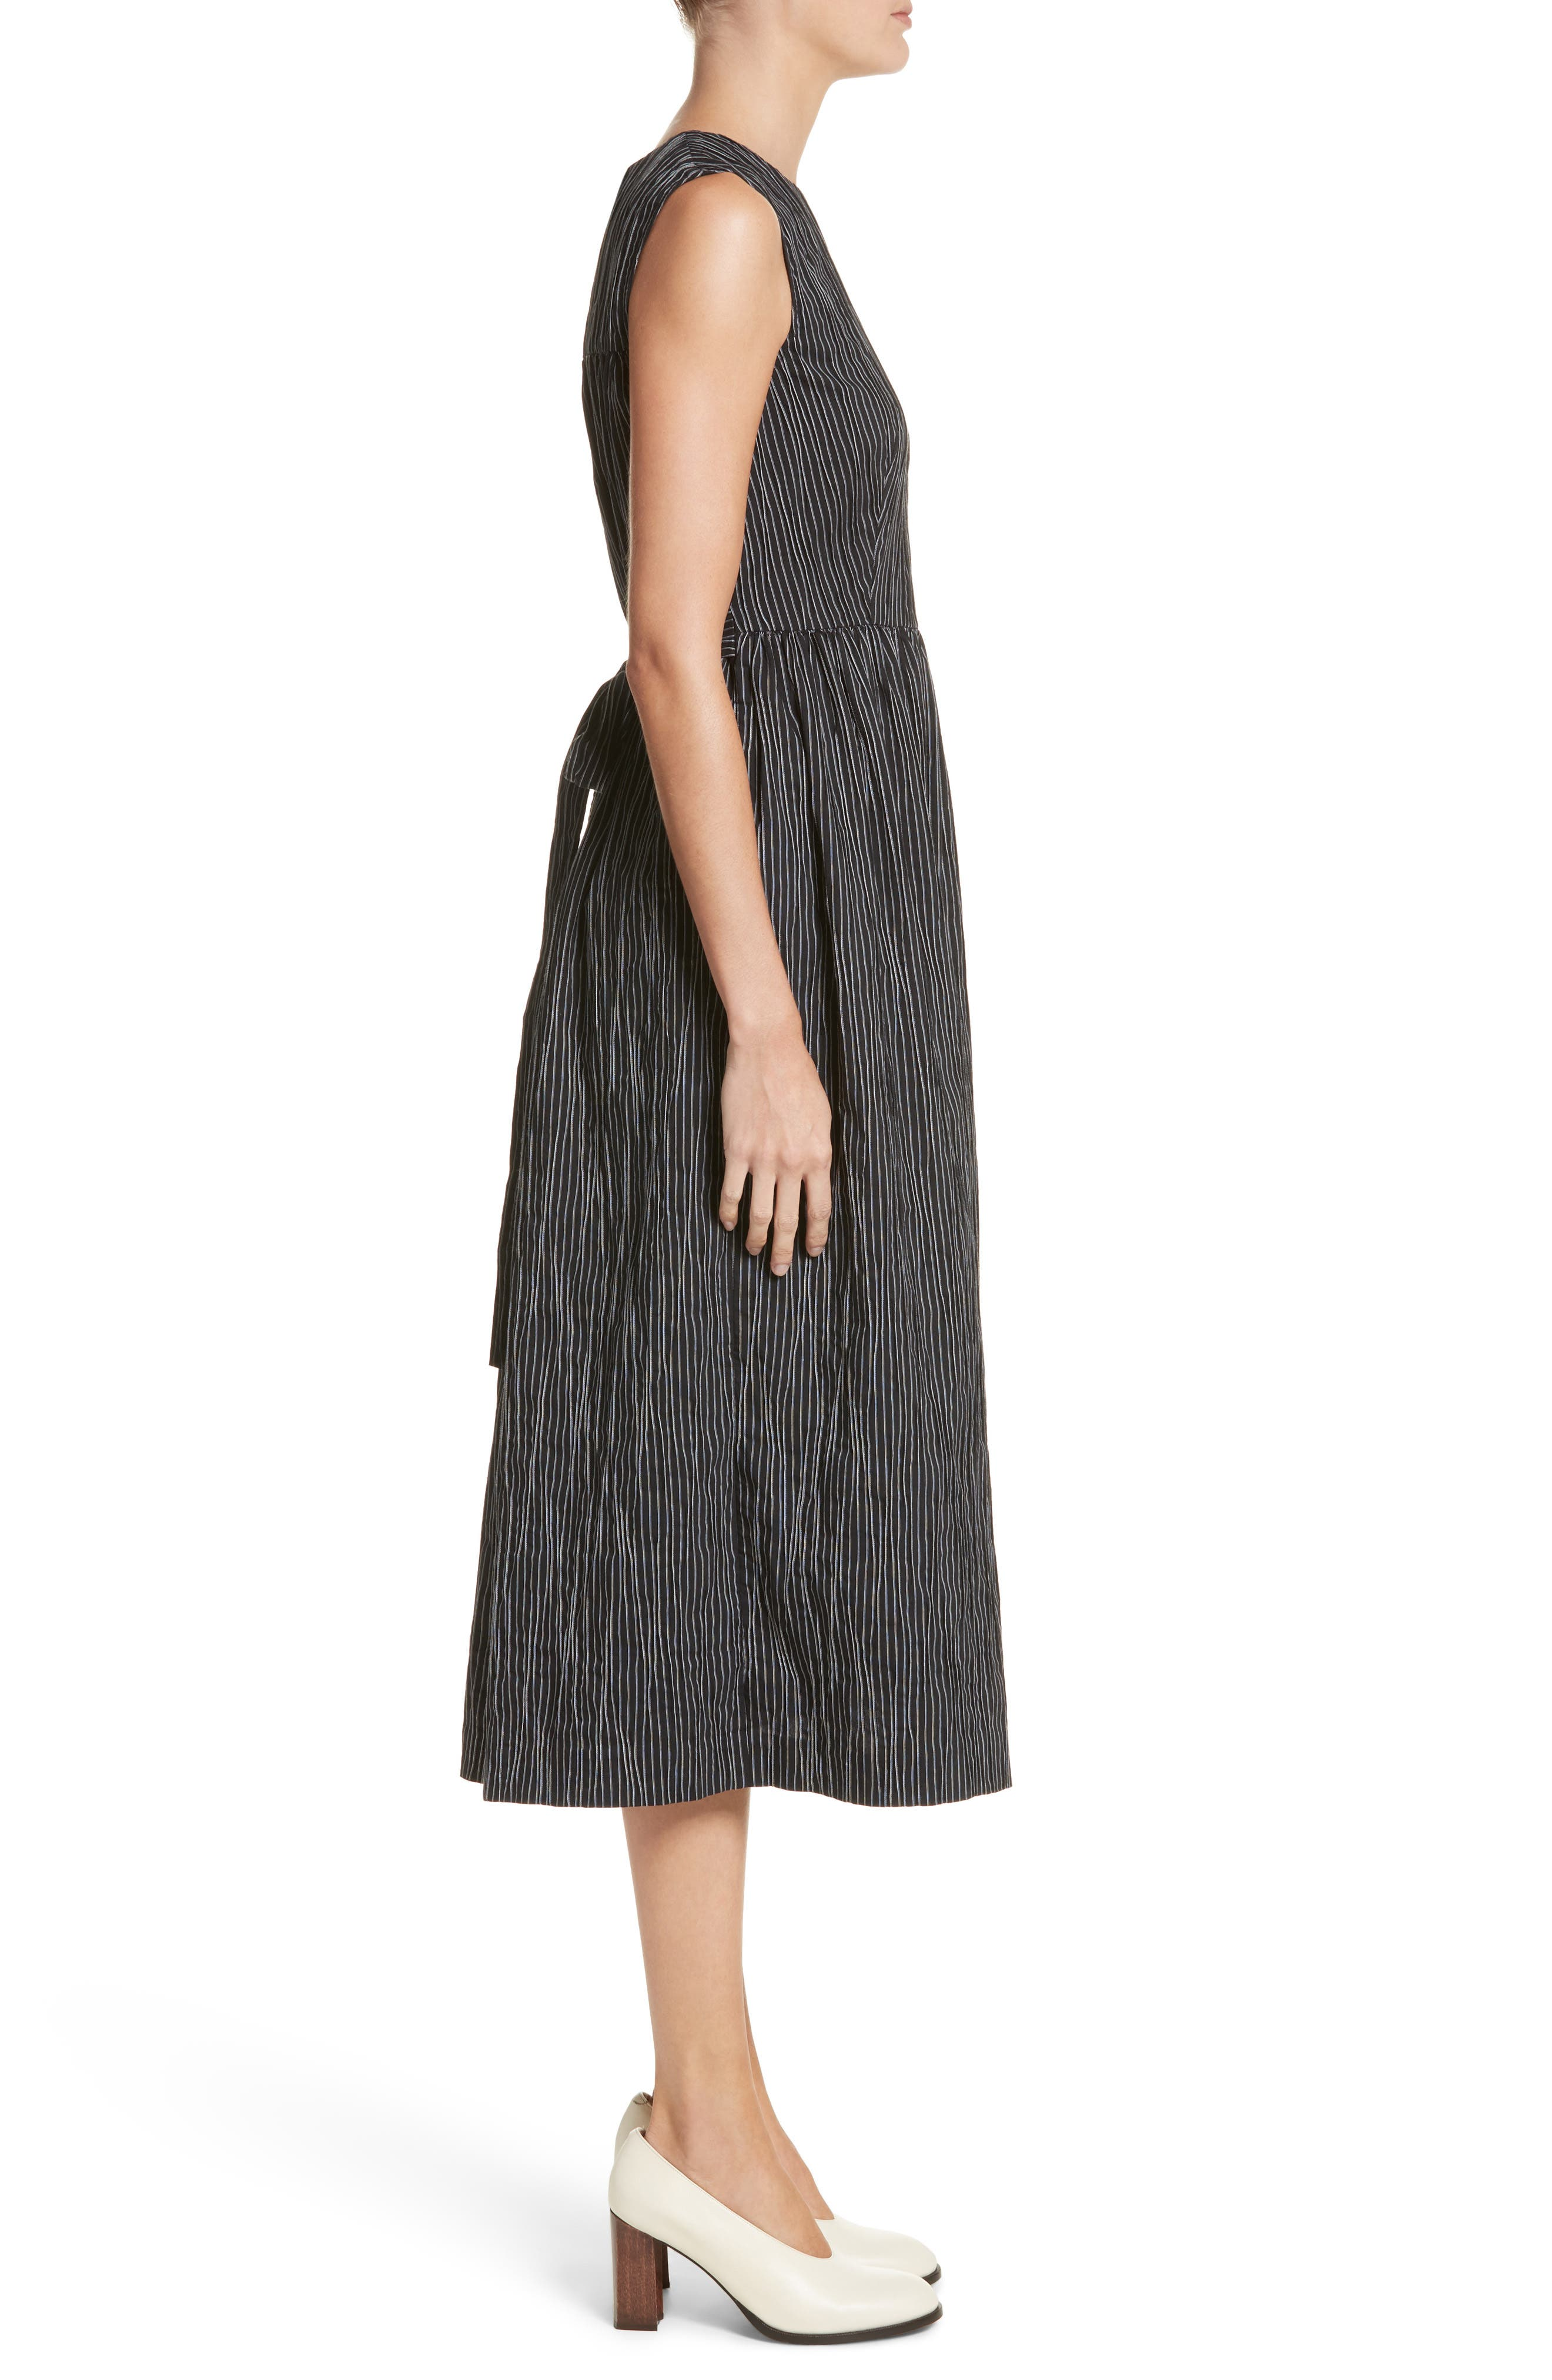 Stripe Crinkle Cotton Blend Midi Dress,                             Alternate thumbnail 3, color,                             Black/ White Stripe